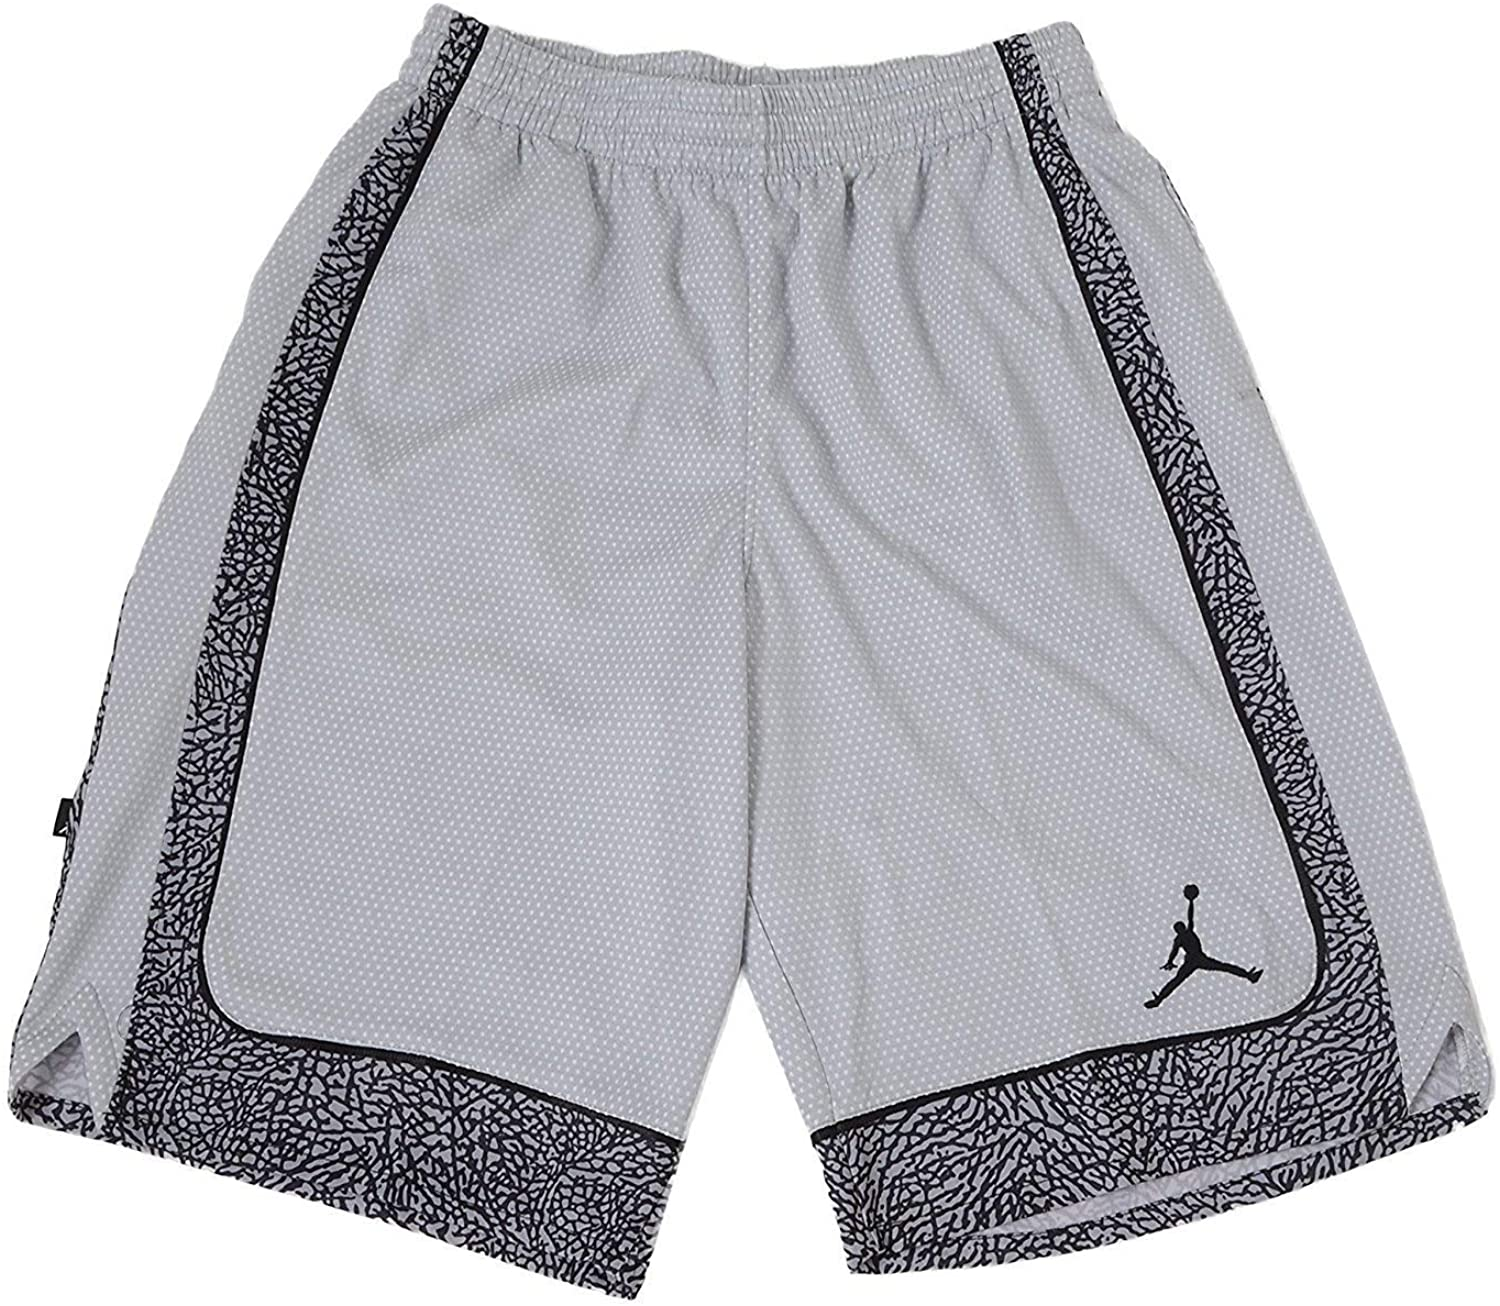 Jordan Nike Boys' Elephants Print Dri-Fit Basketball Shorts